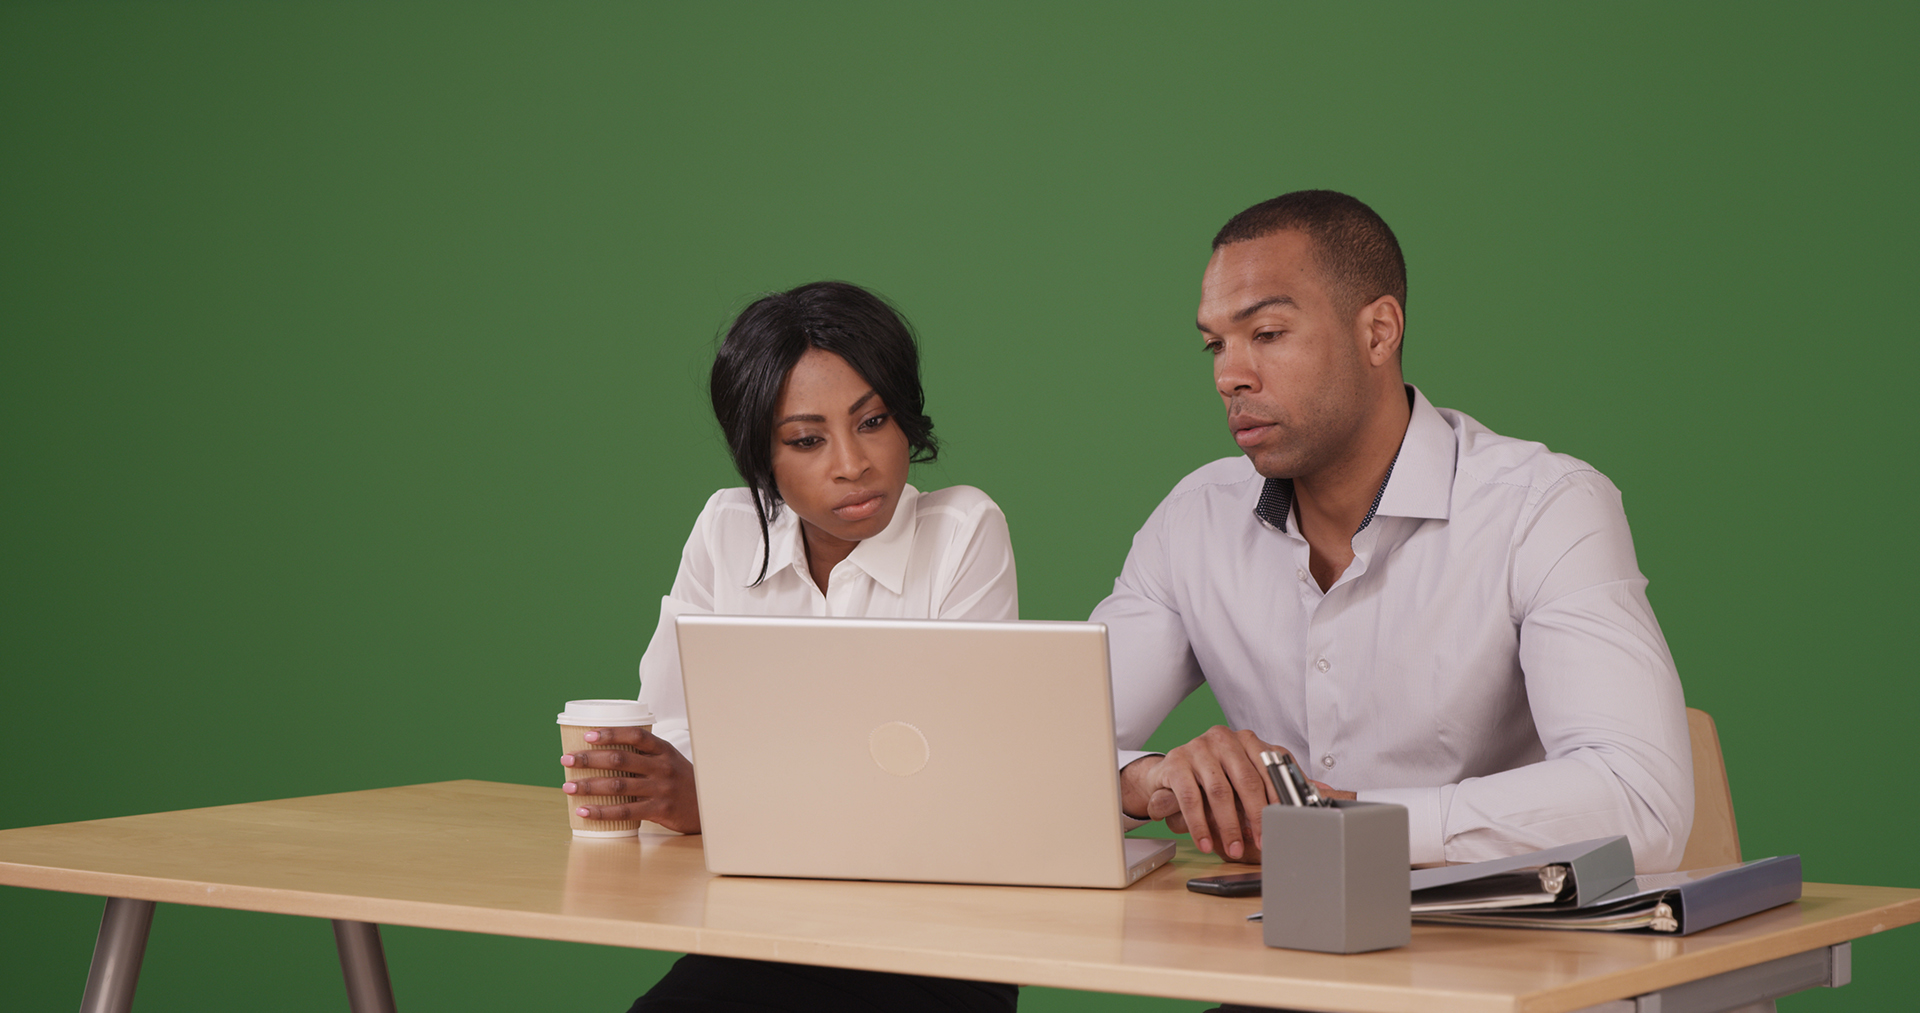 A man and woman looking at a computer